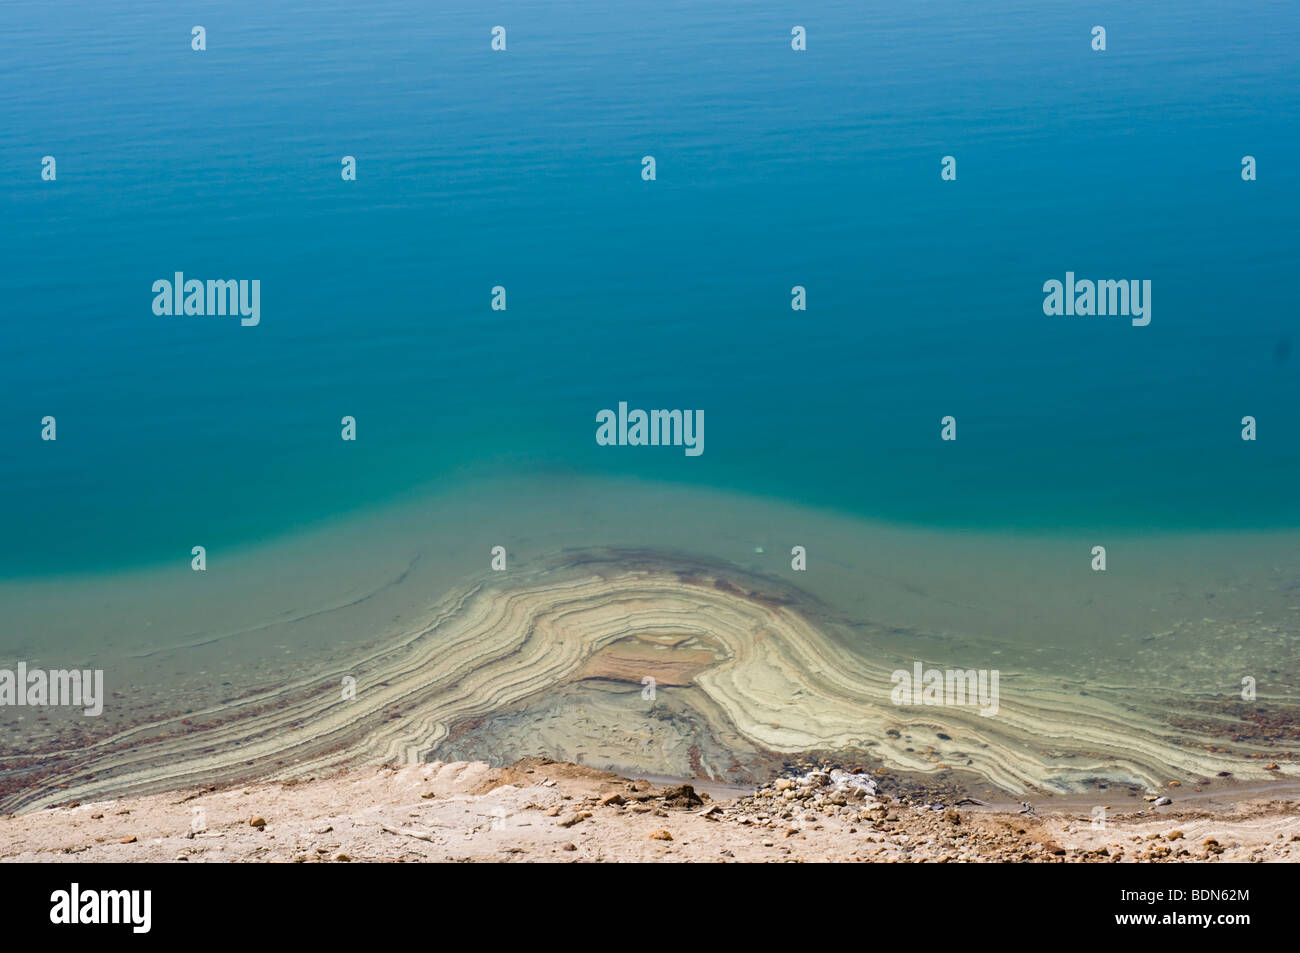 Mineral deposits ring the eastern shore of the Dead Sea in Jordan. - Stock Image